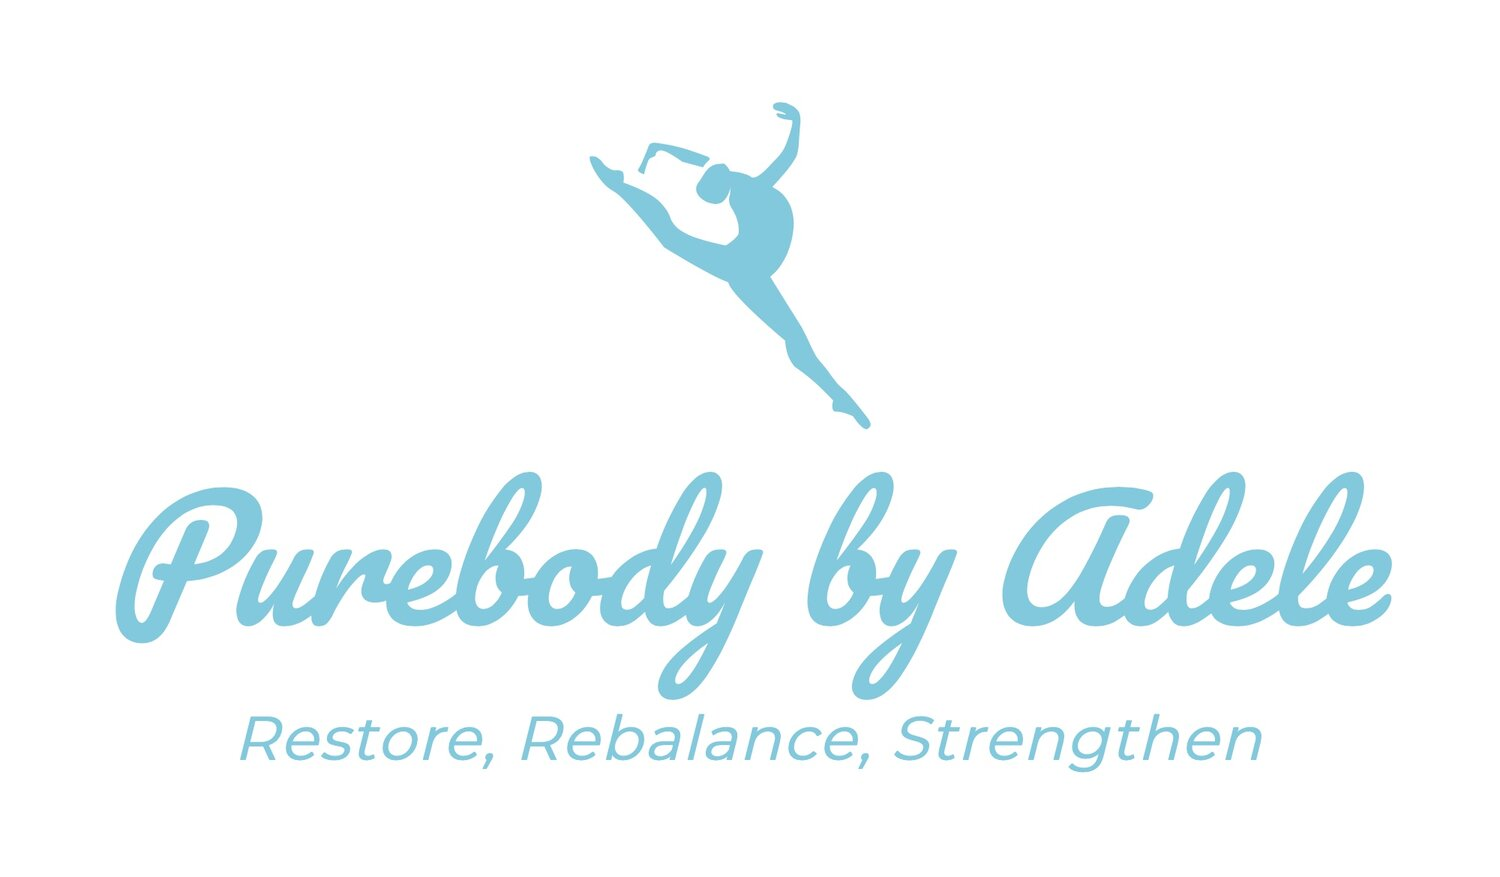 Adele Smyth Purebody By Adele - Pilates, Barre & Massage Thames Ditton